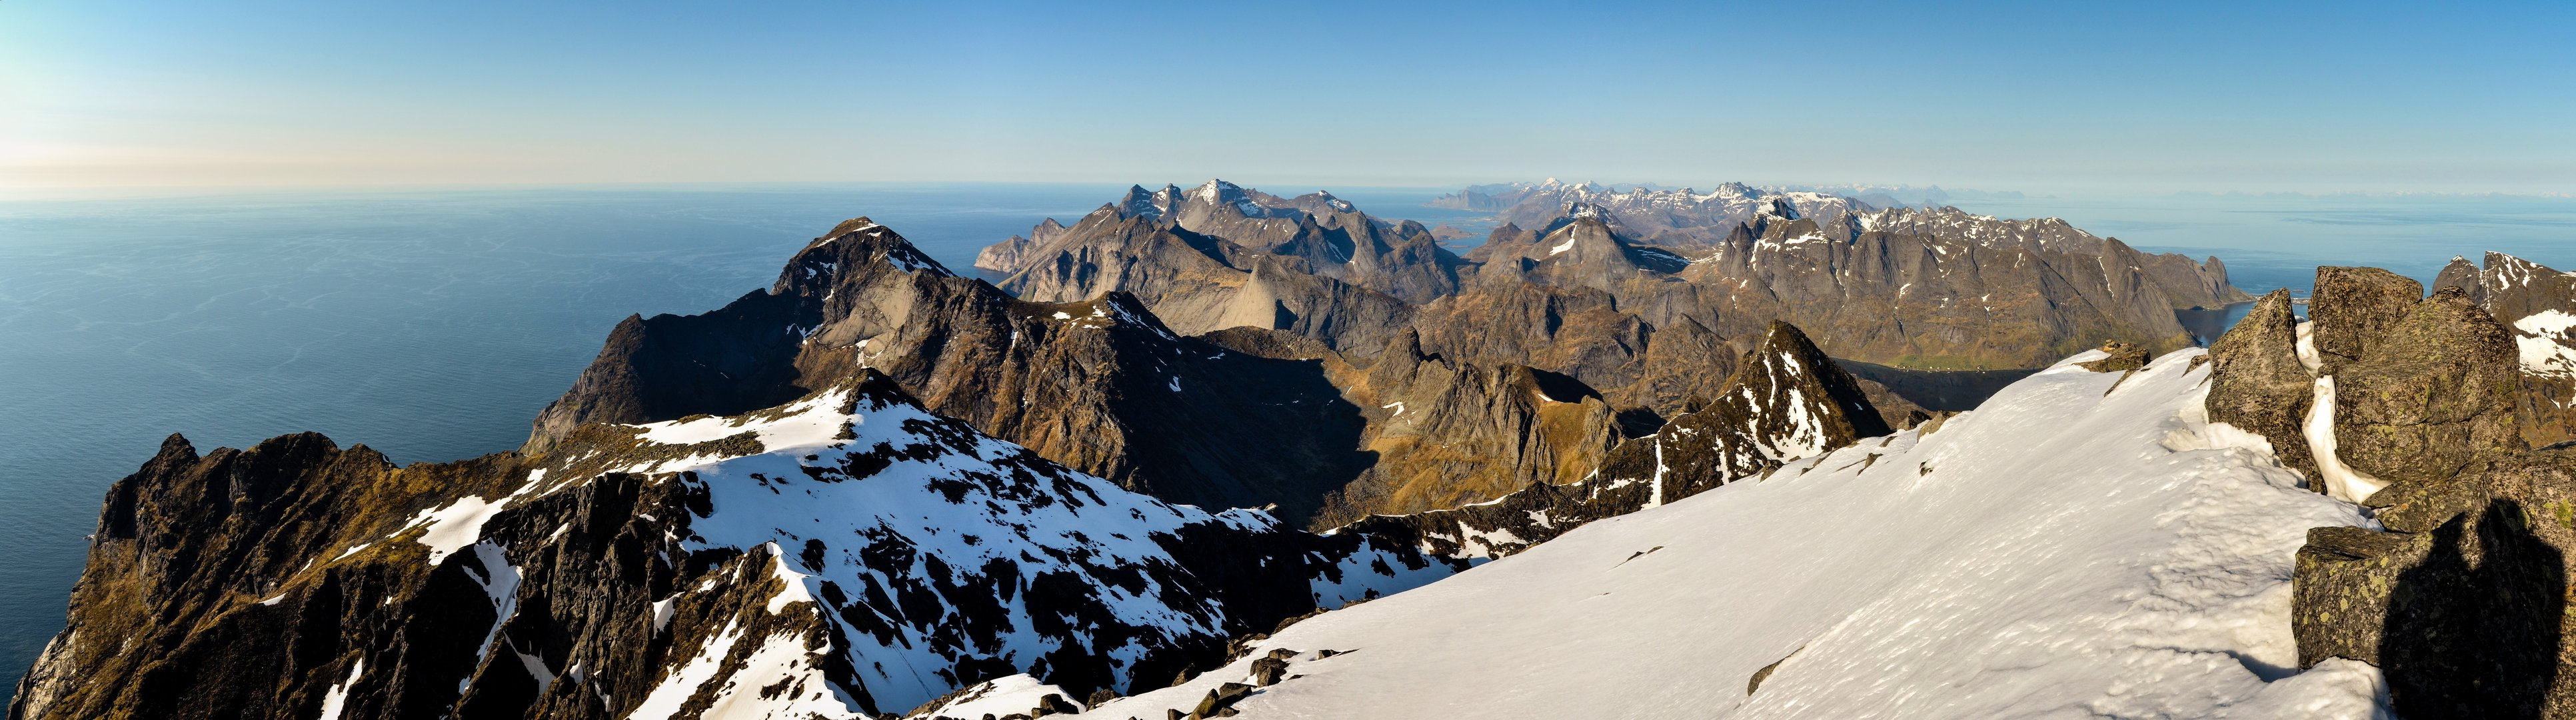 H_-_Hermannsdalstinden_31_View_from_the_summit_to_the_northeast_(panorama).jpg